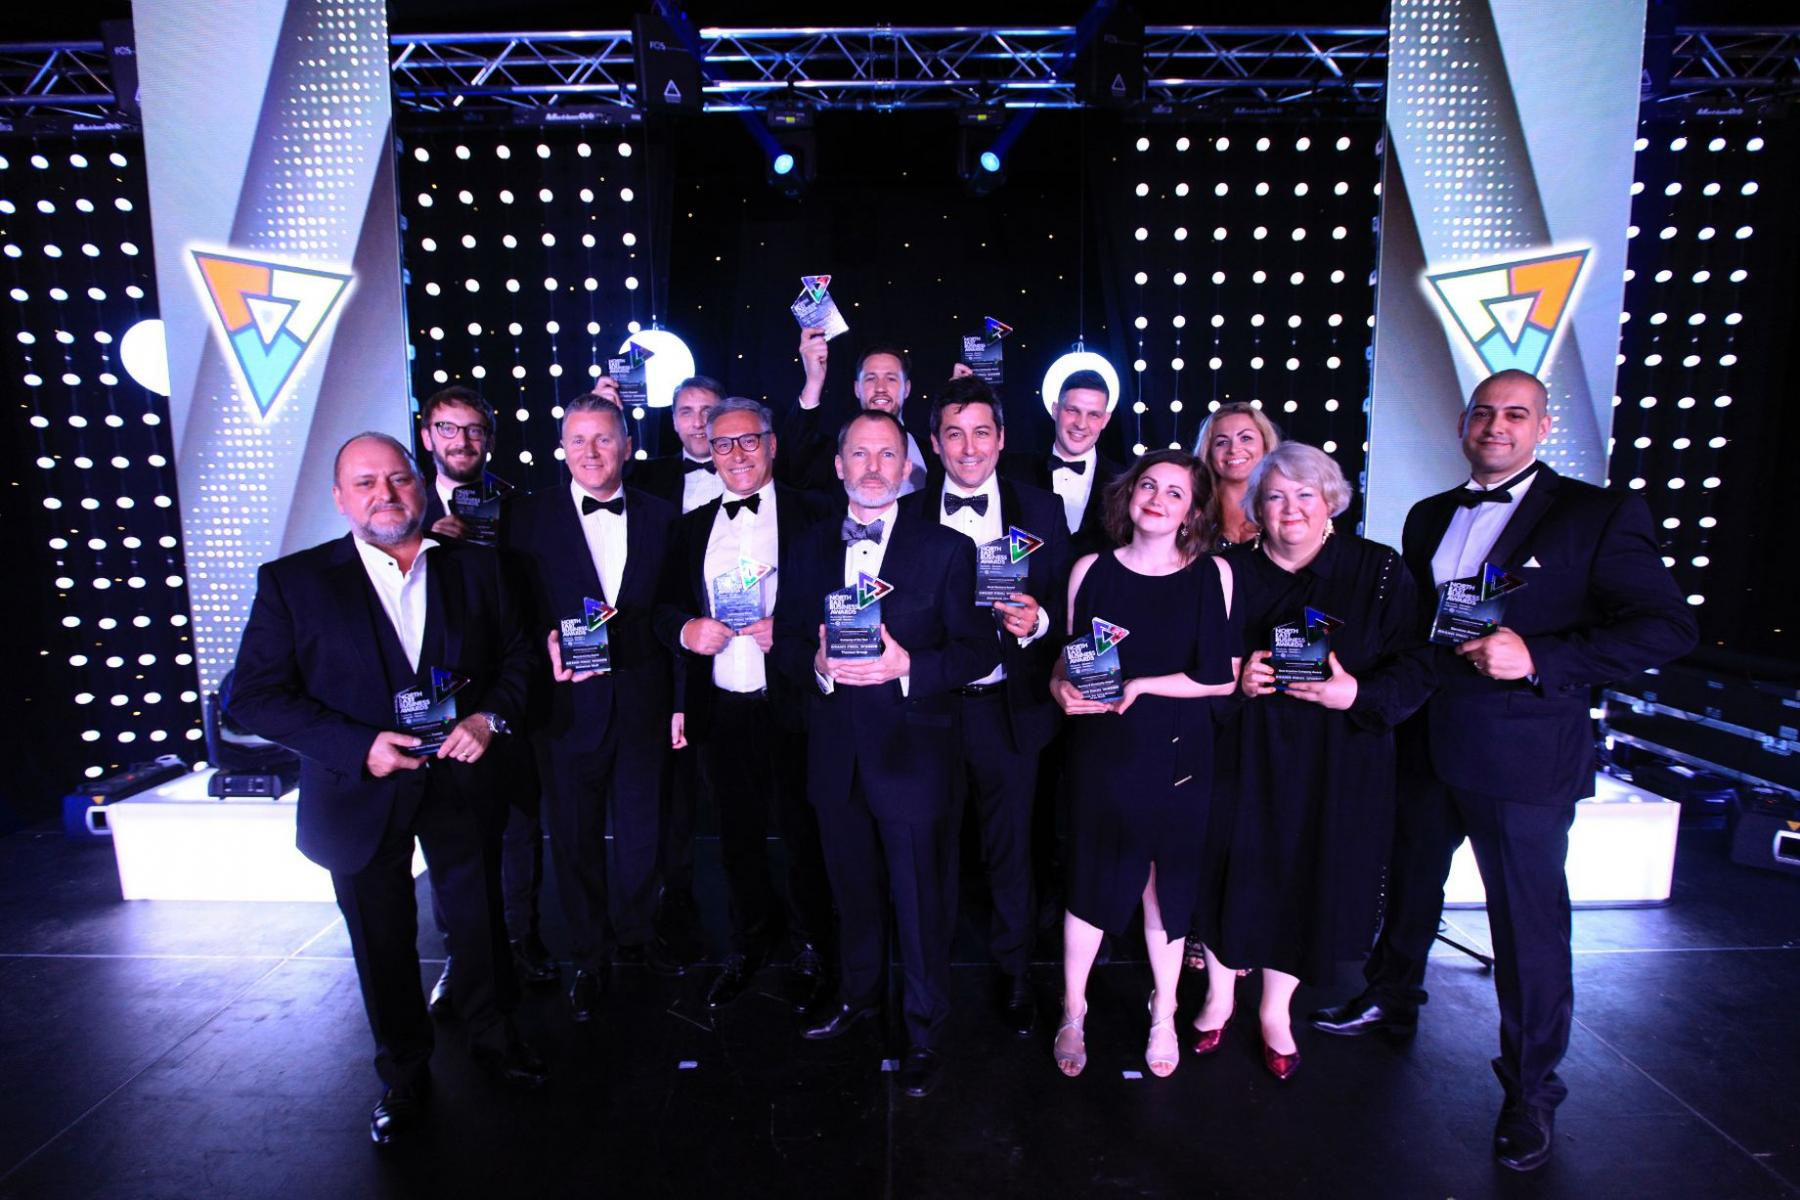 The winner of the North East Business Awards grand final 2019 at Hardwick Hall, Sedgefield